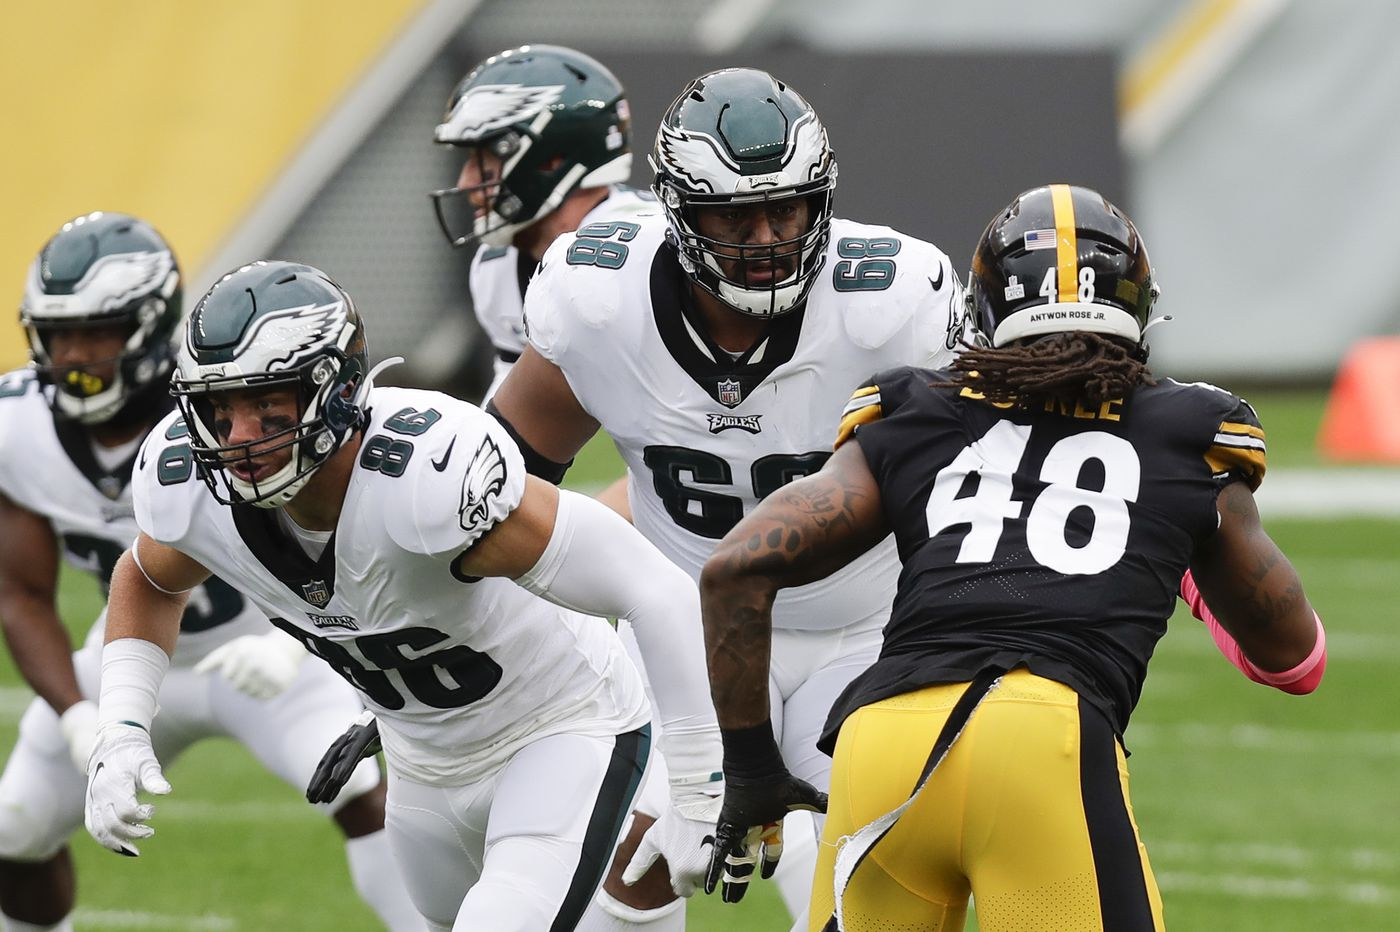 Jordan Mailata and the Eagles' young O-line may have bright future | Film analysis